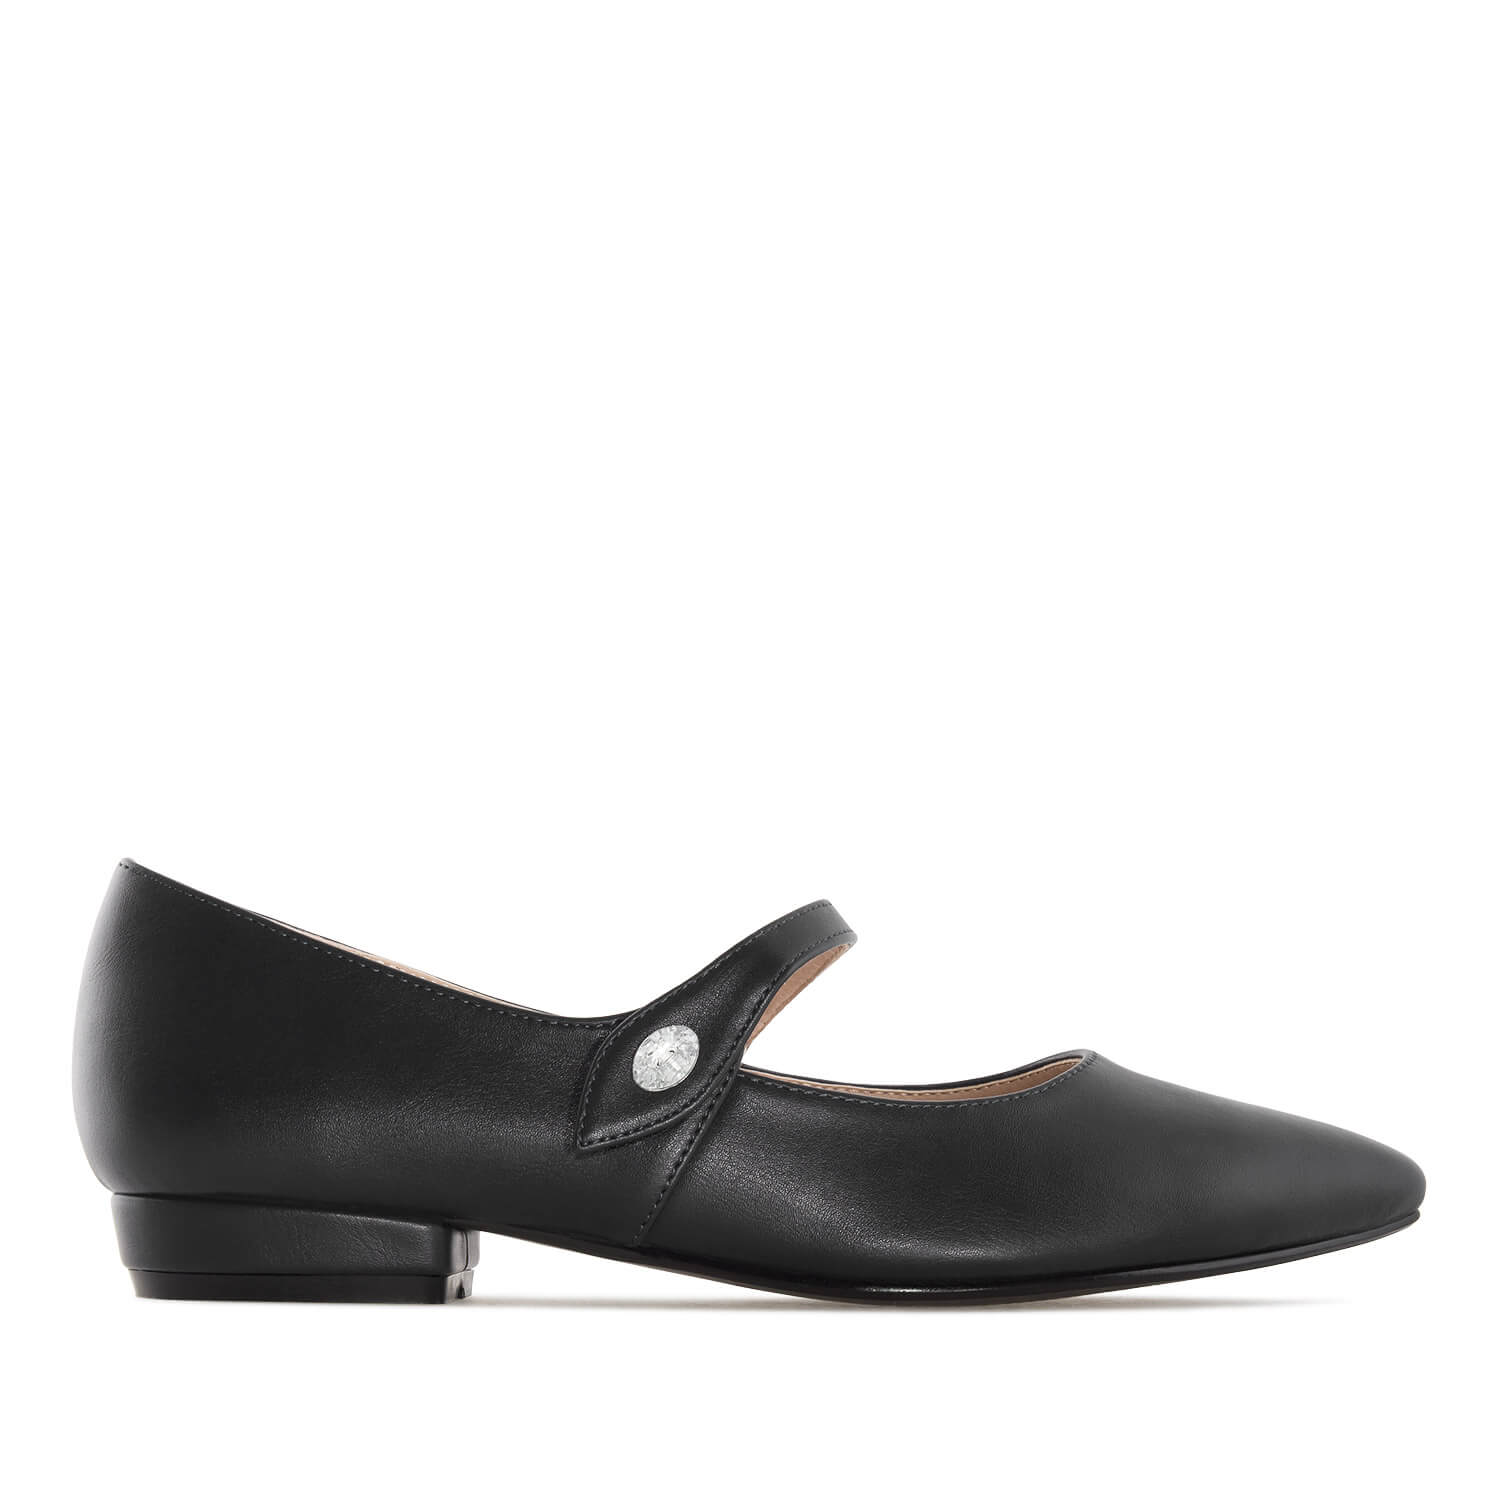 Bailarina Mary Jane Soft Negro